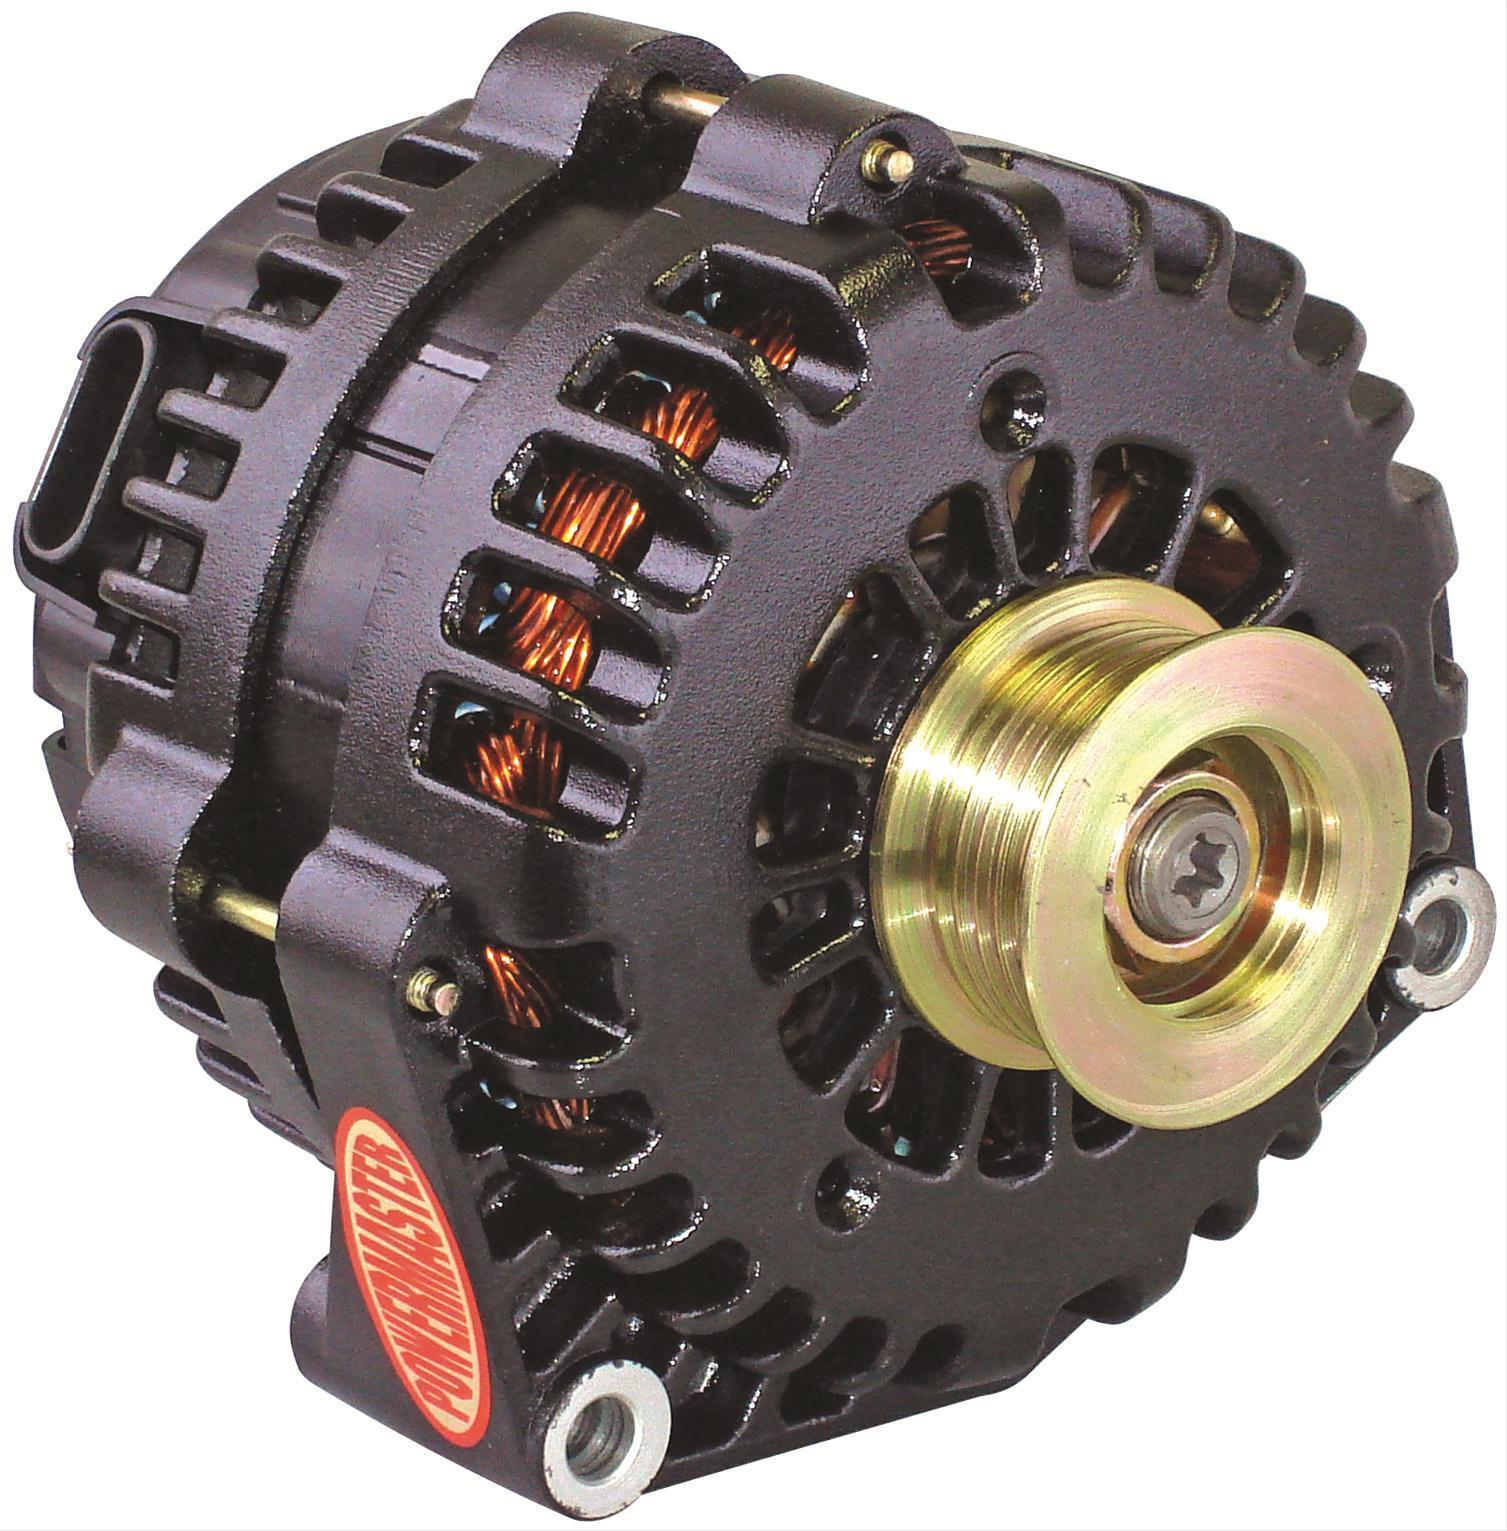 hight resolution of powermaster gm style ad alternator pm58302 black 215 amp 2 pin 6 rib pulley